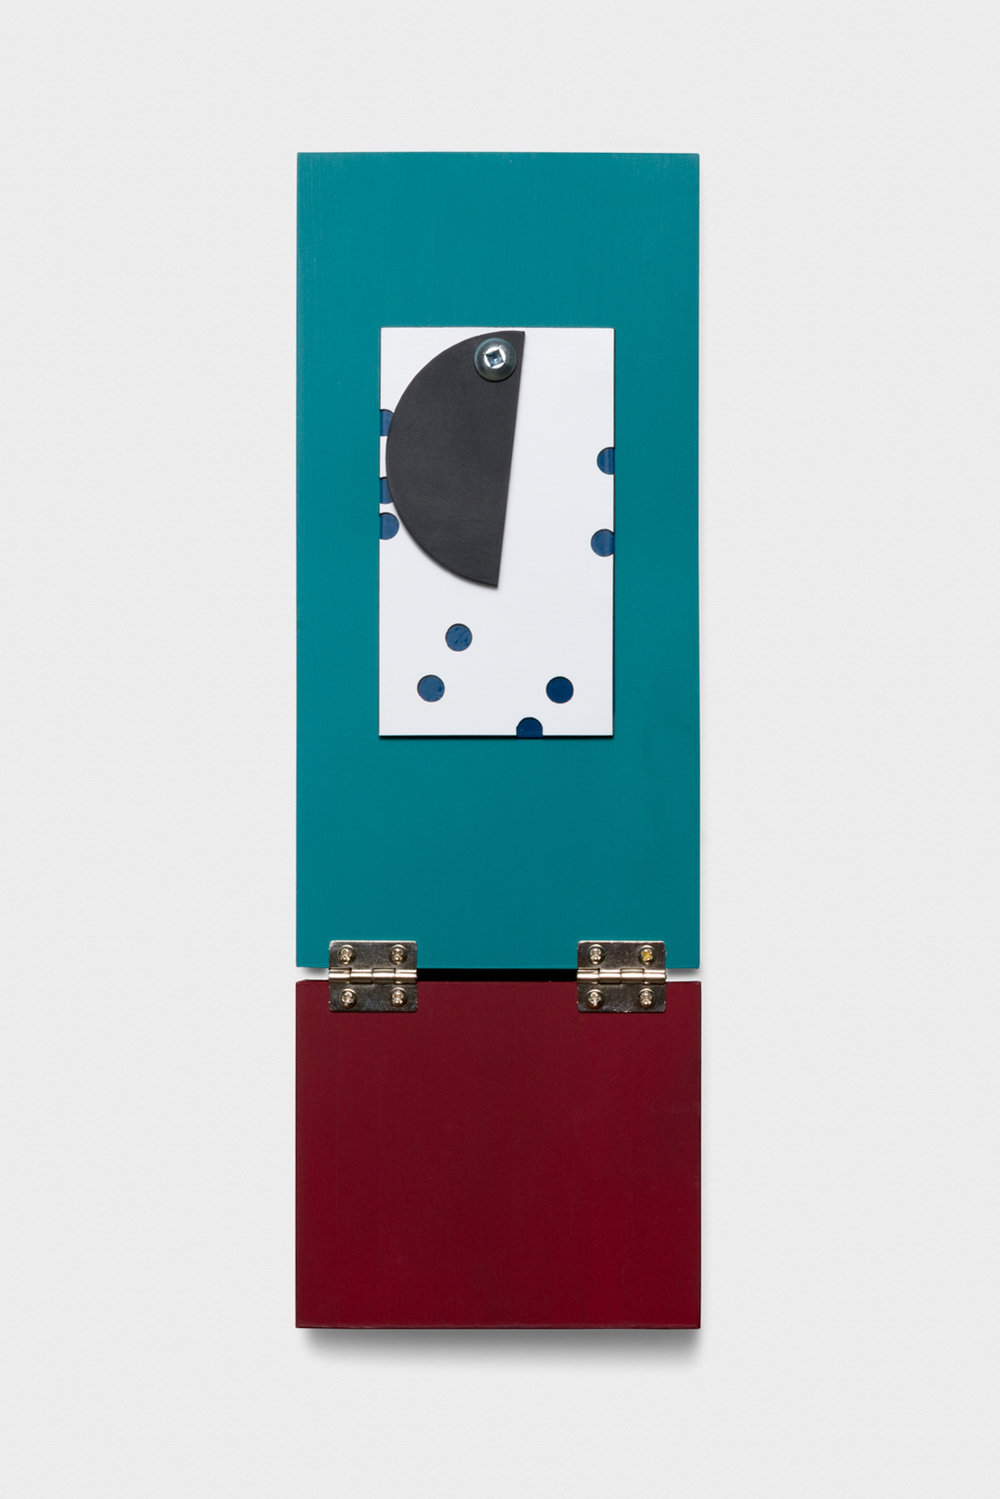 Vanessa Maltese  Chart no. 34  2014 Wood, sandblasted plexiglass, magnetic paper, powder-coated steel, hardware, chalkboard paint 10h x 3 ½w x ¾d in VM004